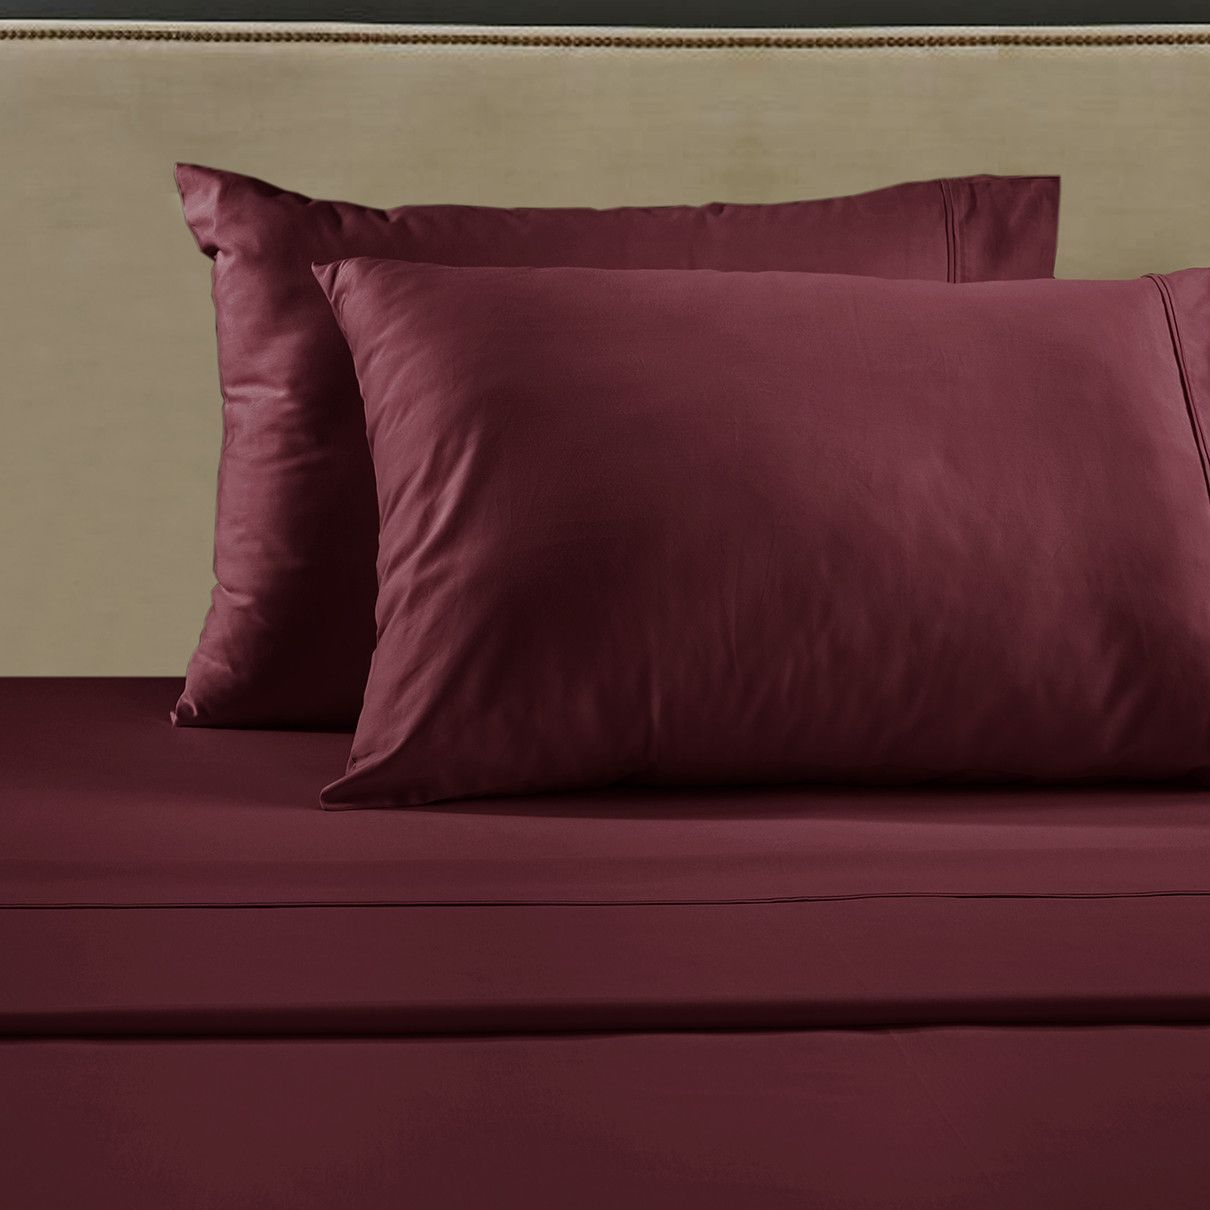 thread count sheet set products pinterest egyptian cotton